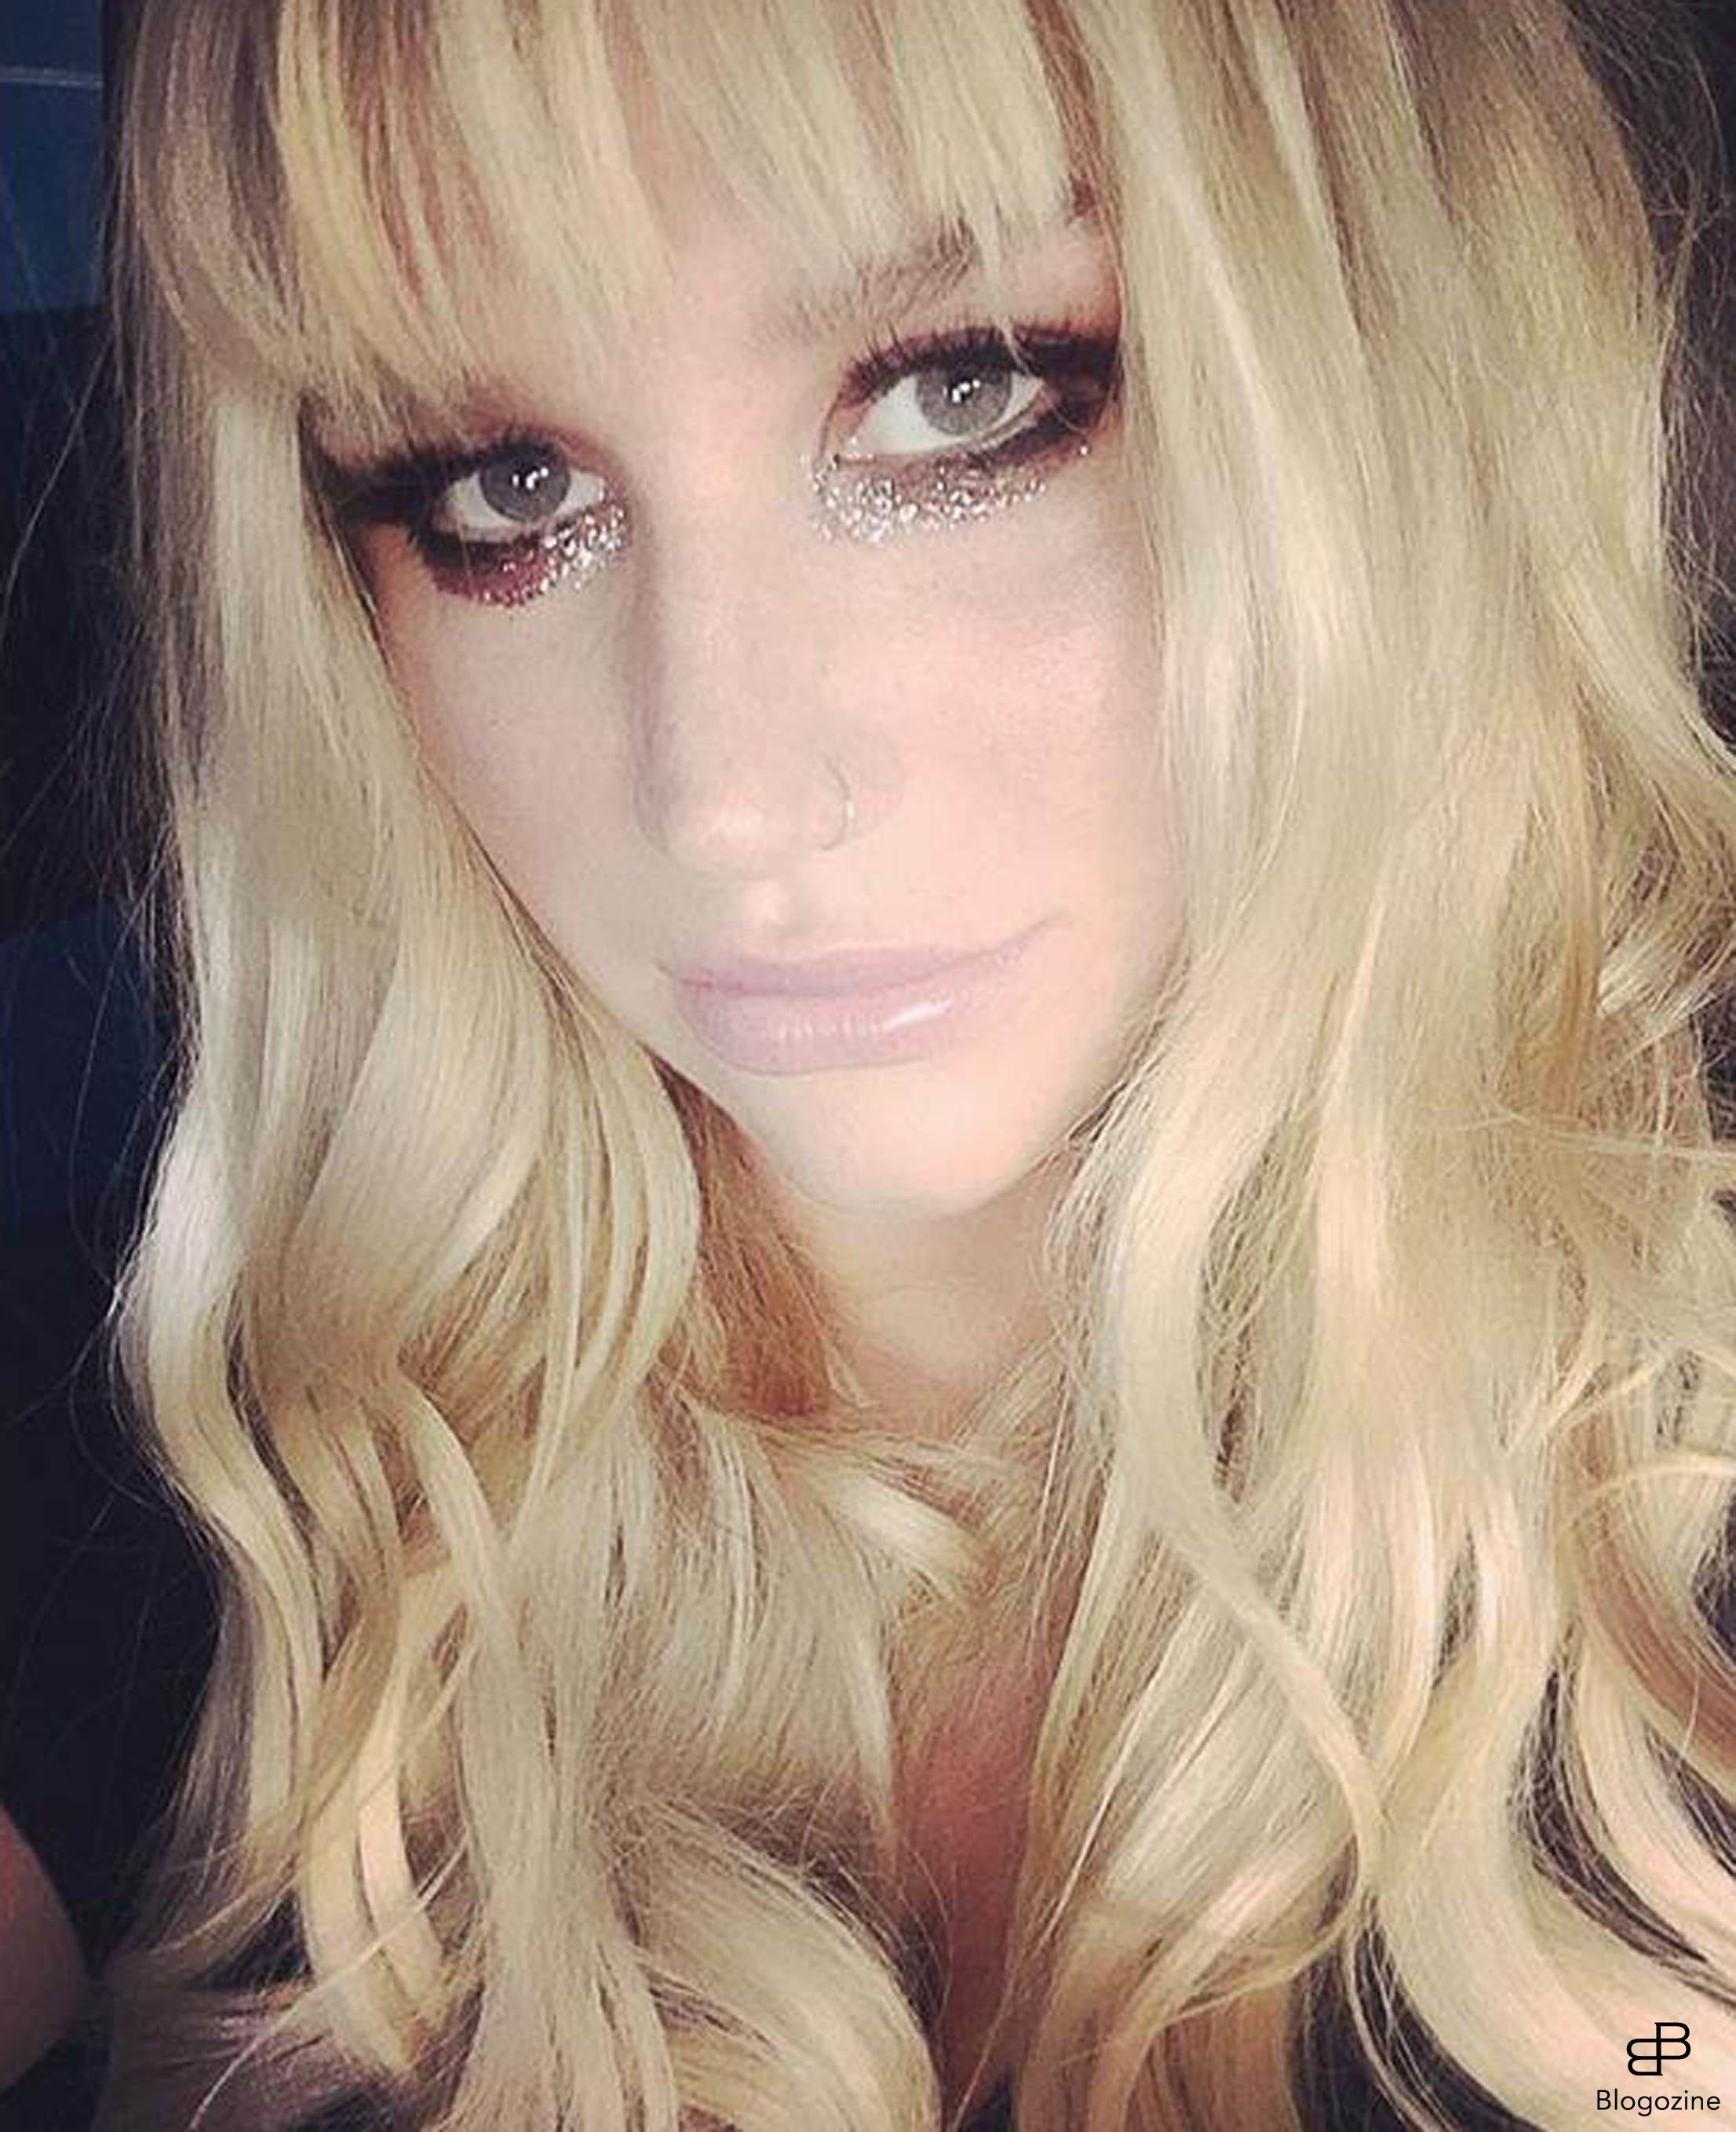 6268777 29-9-2016 Celebrity Selfies Pictured: Kesha PLANET PHOTOS www.planetphotos.co.uk info@planetphotos.co.uk +44 (0)20 8883 1438 DISTR. STELLA PICTURES